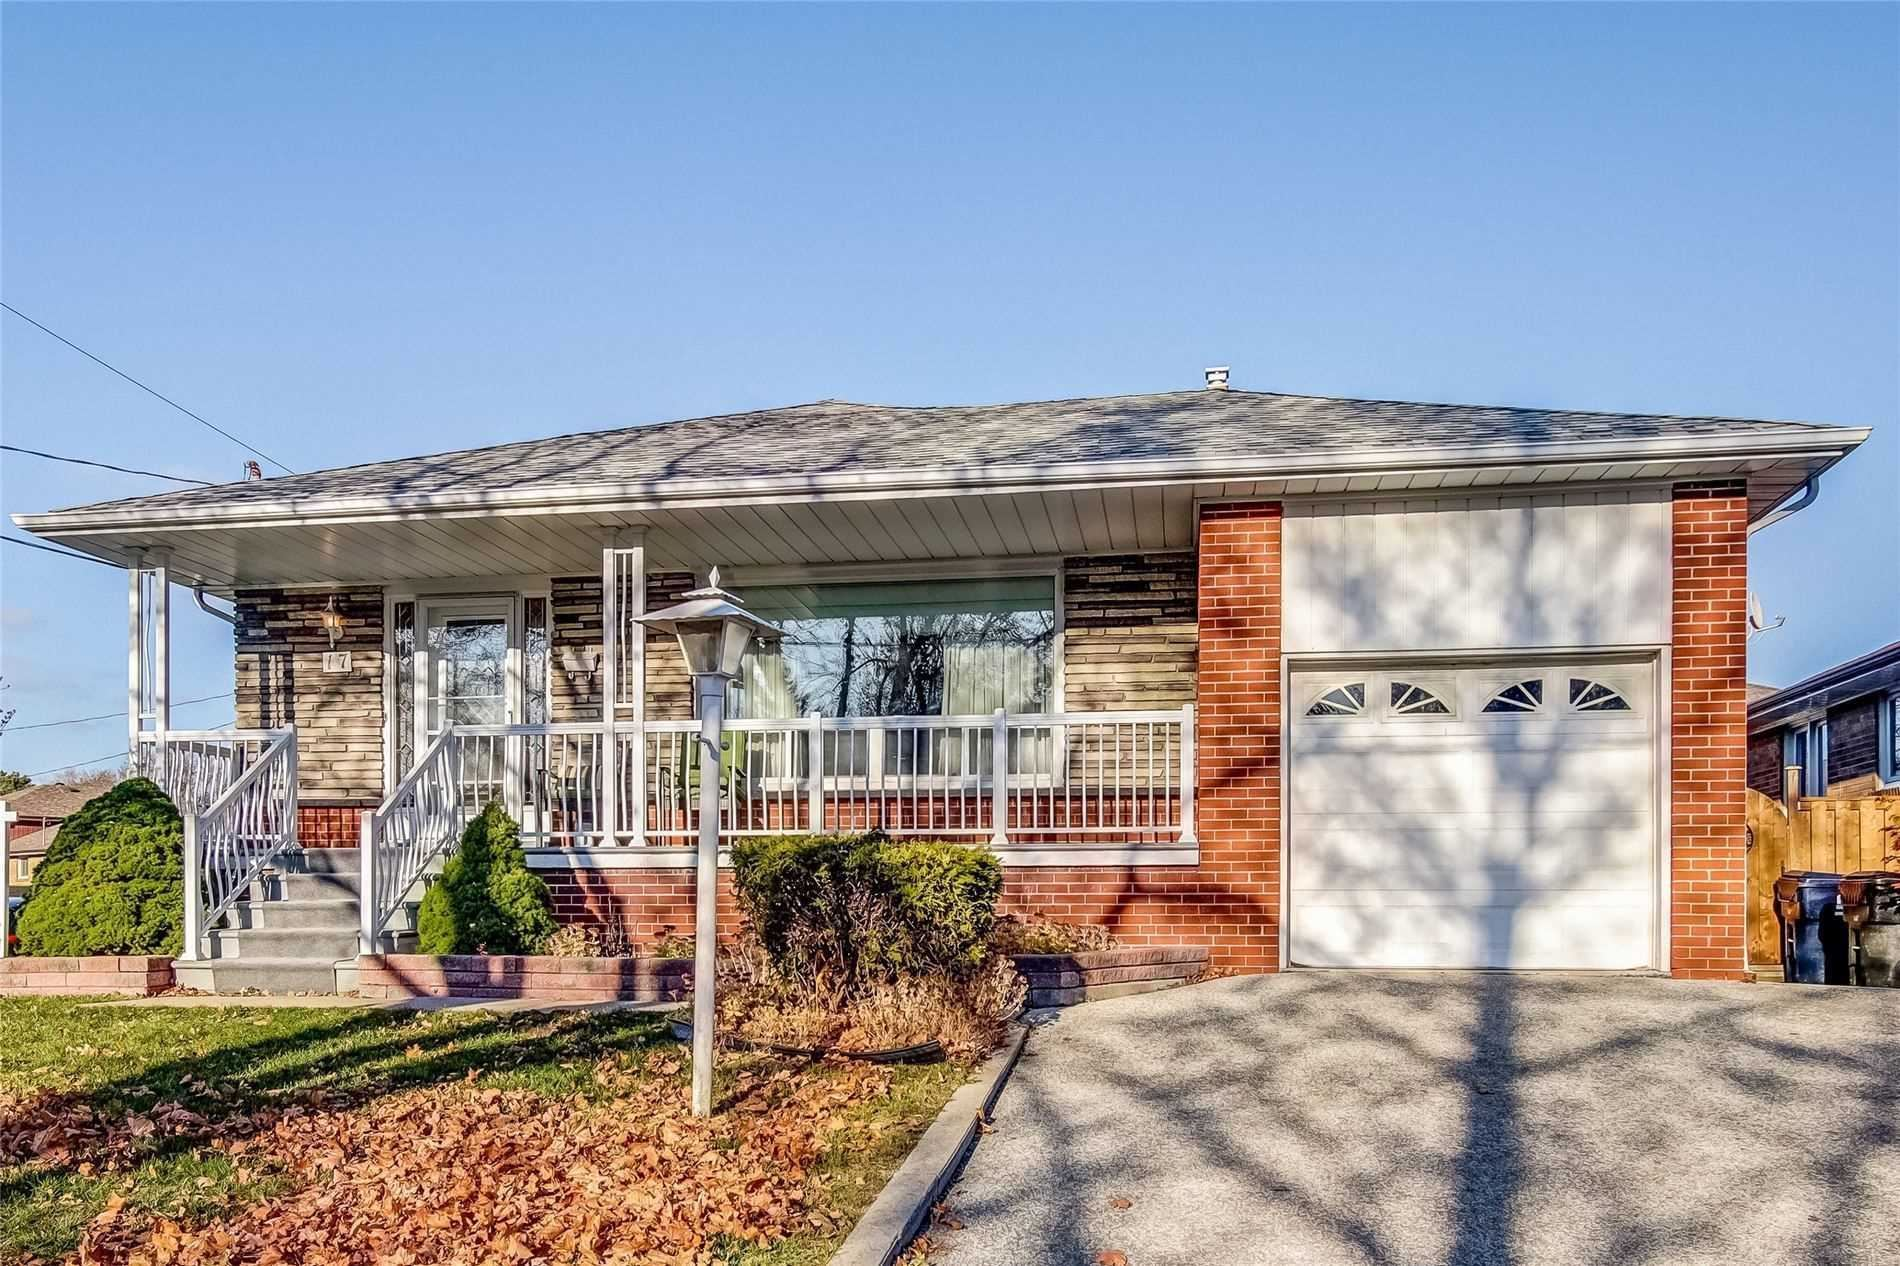 17 Arcade Dr, Toronto, ON M9P2V8 - MLS#: W5087174